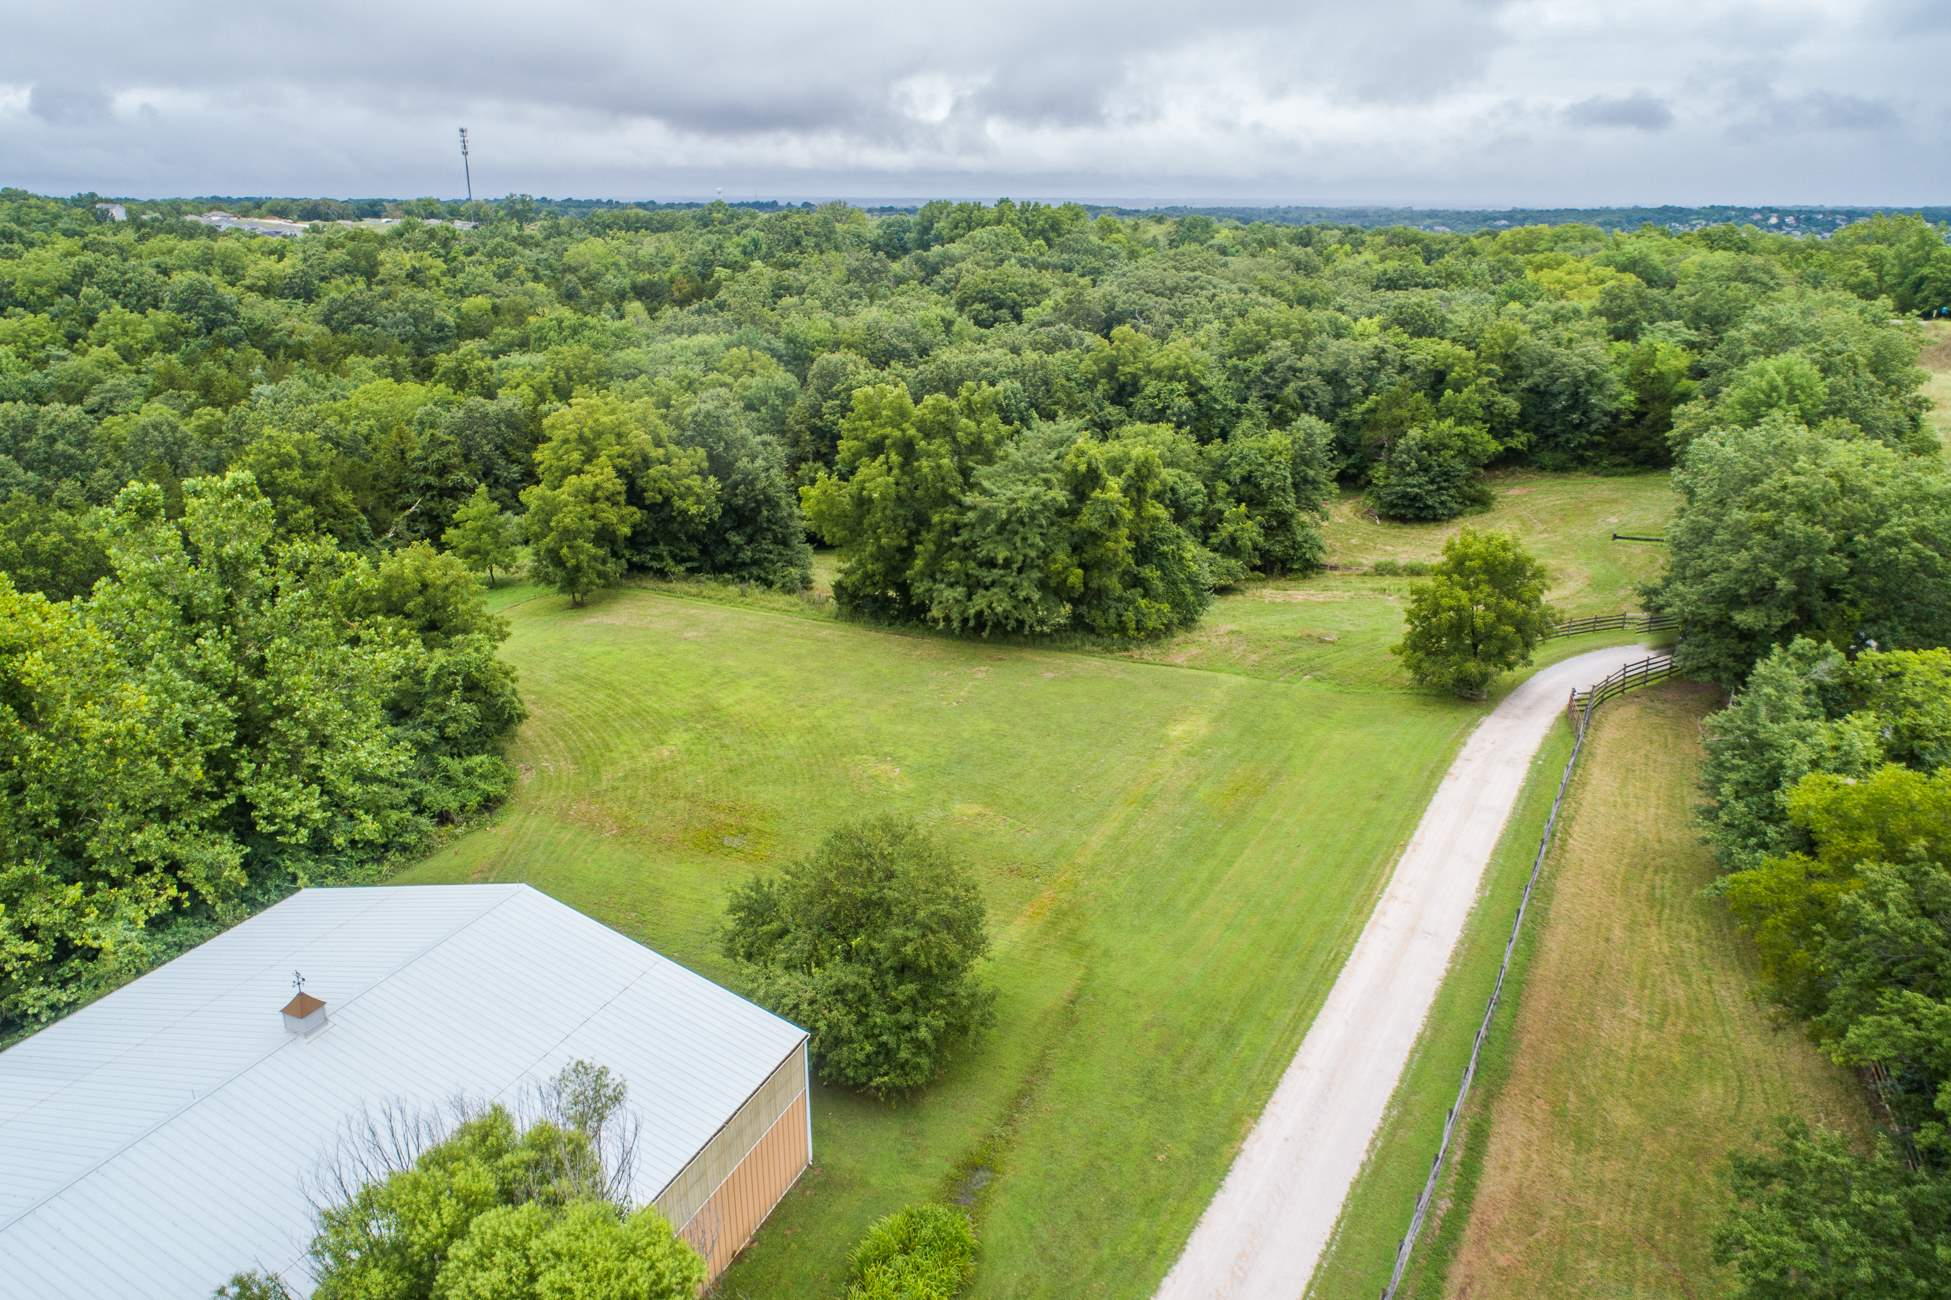 7953 South Old Plank Rd, Columbia, MO 65203